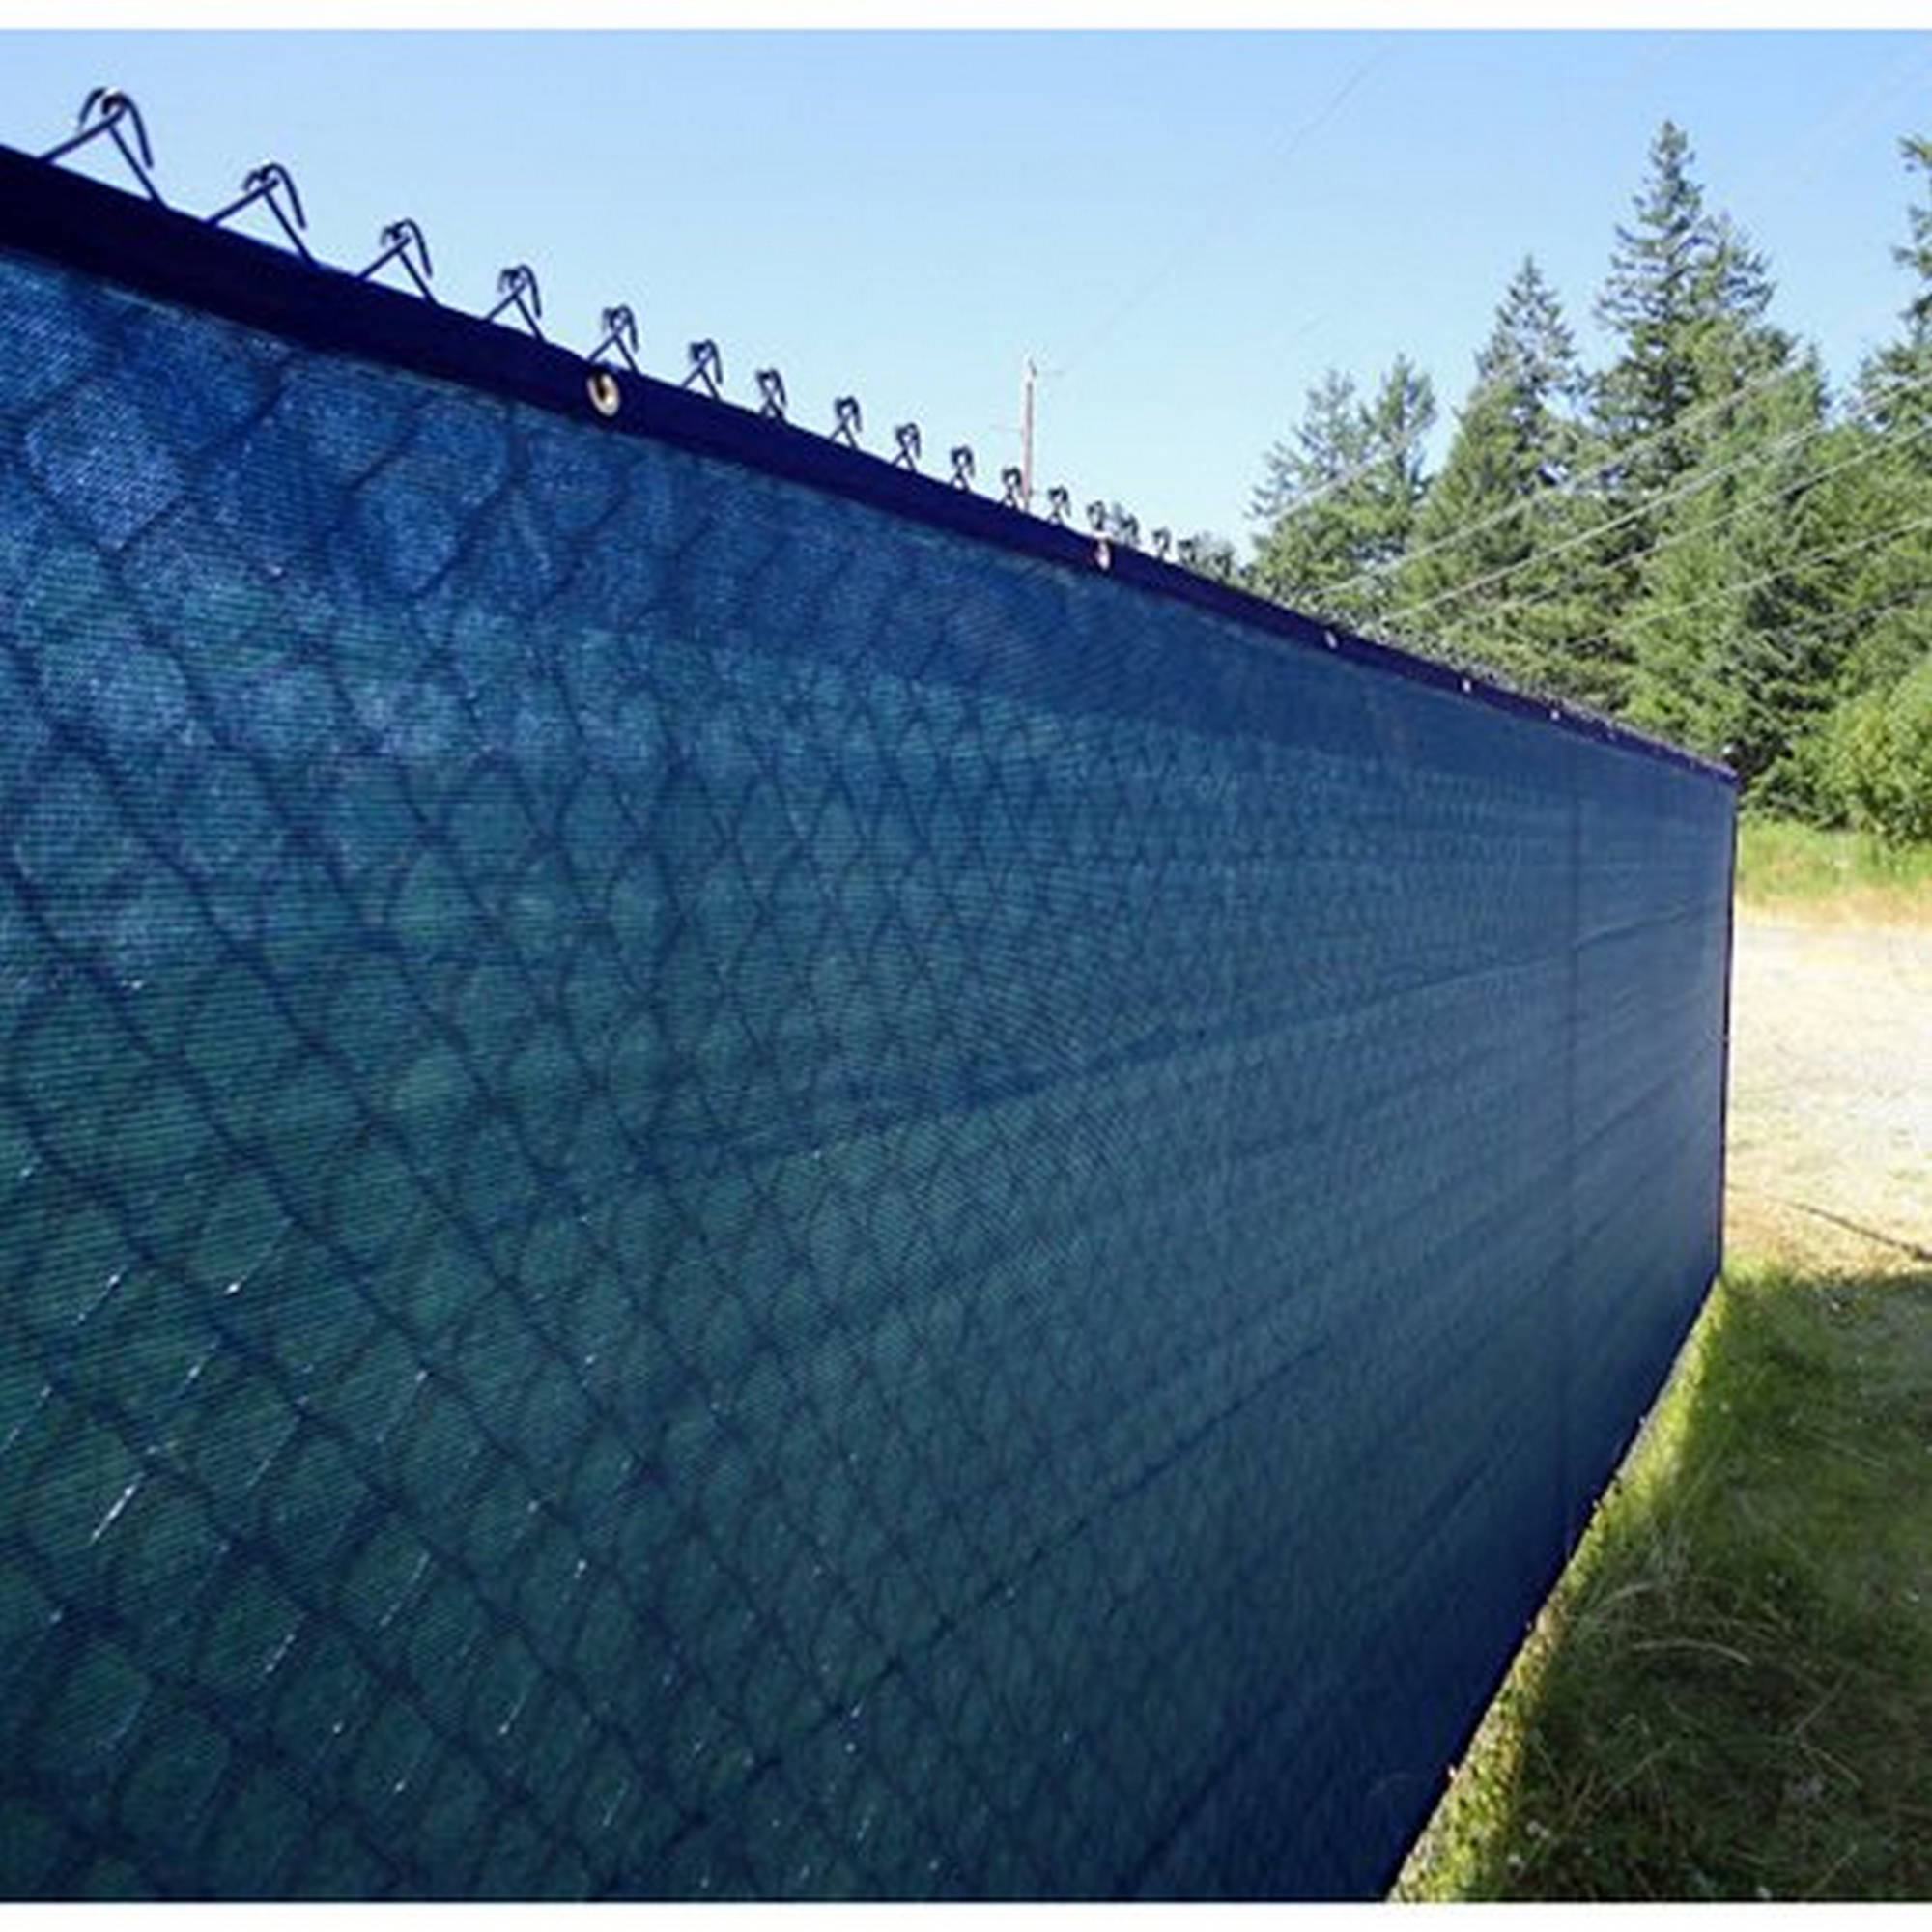 Aleko Privacy Mesh Fabric Screen Fence with Grommets 6 x 50 Feet Blue by ALEKO